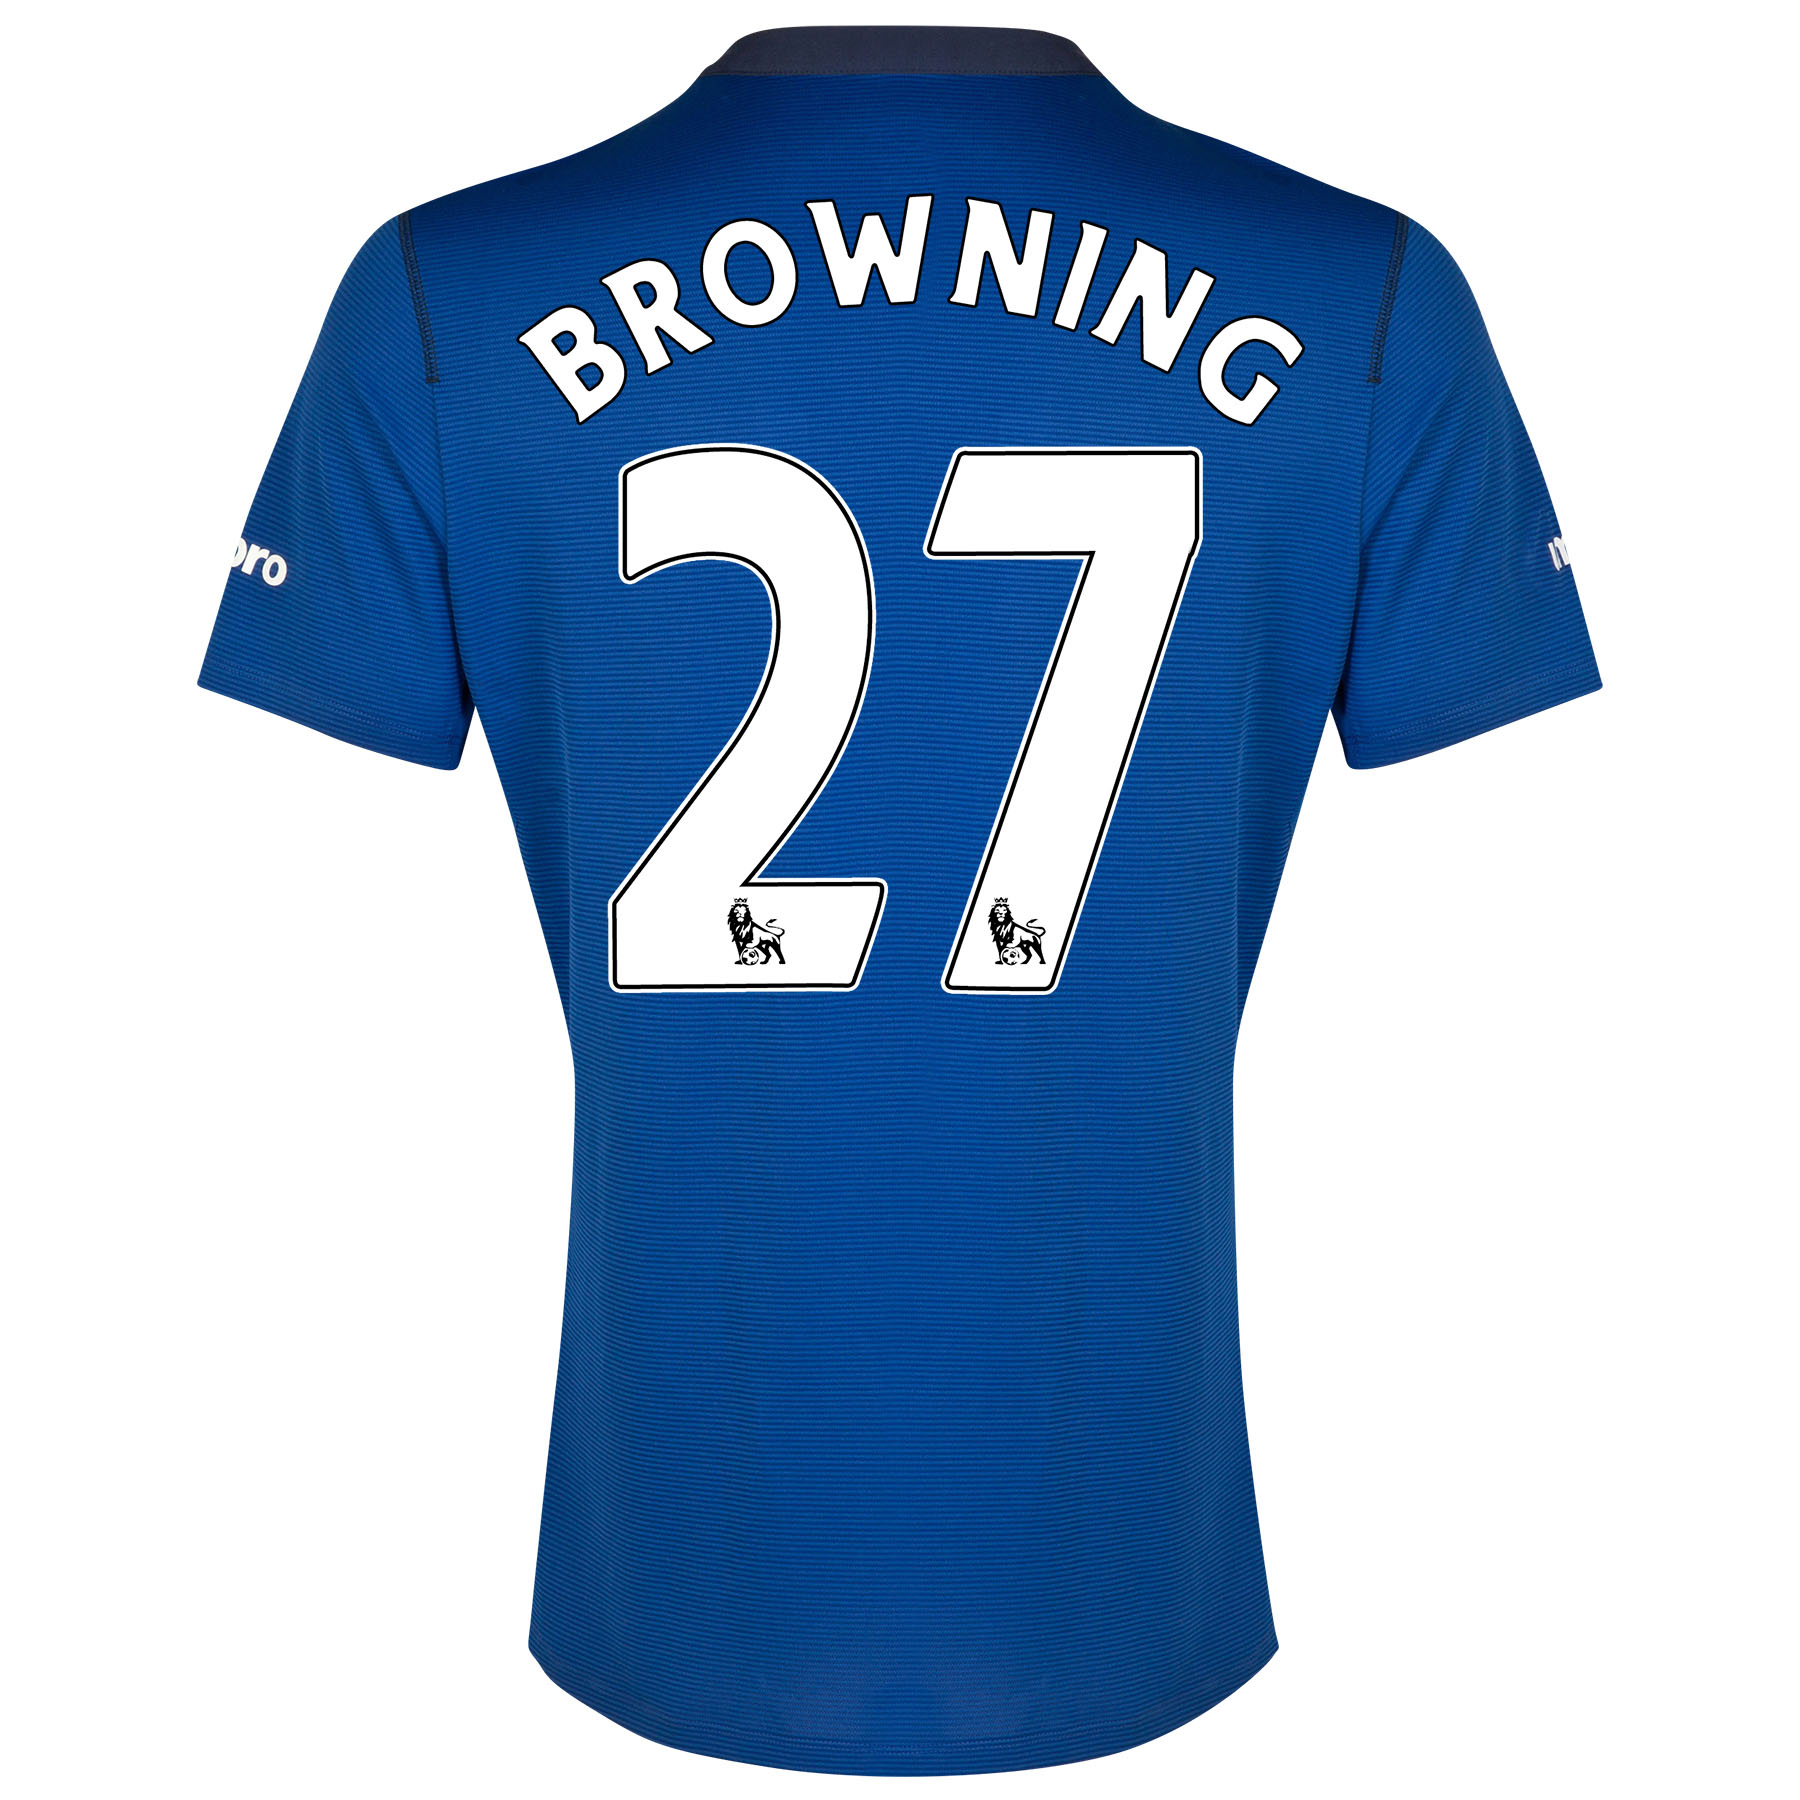 Everton SS Home Shirt 2014/15 with Browning 36 printing